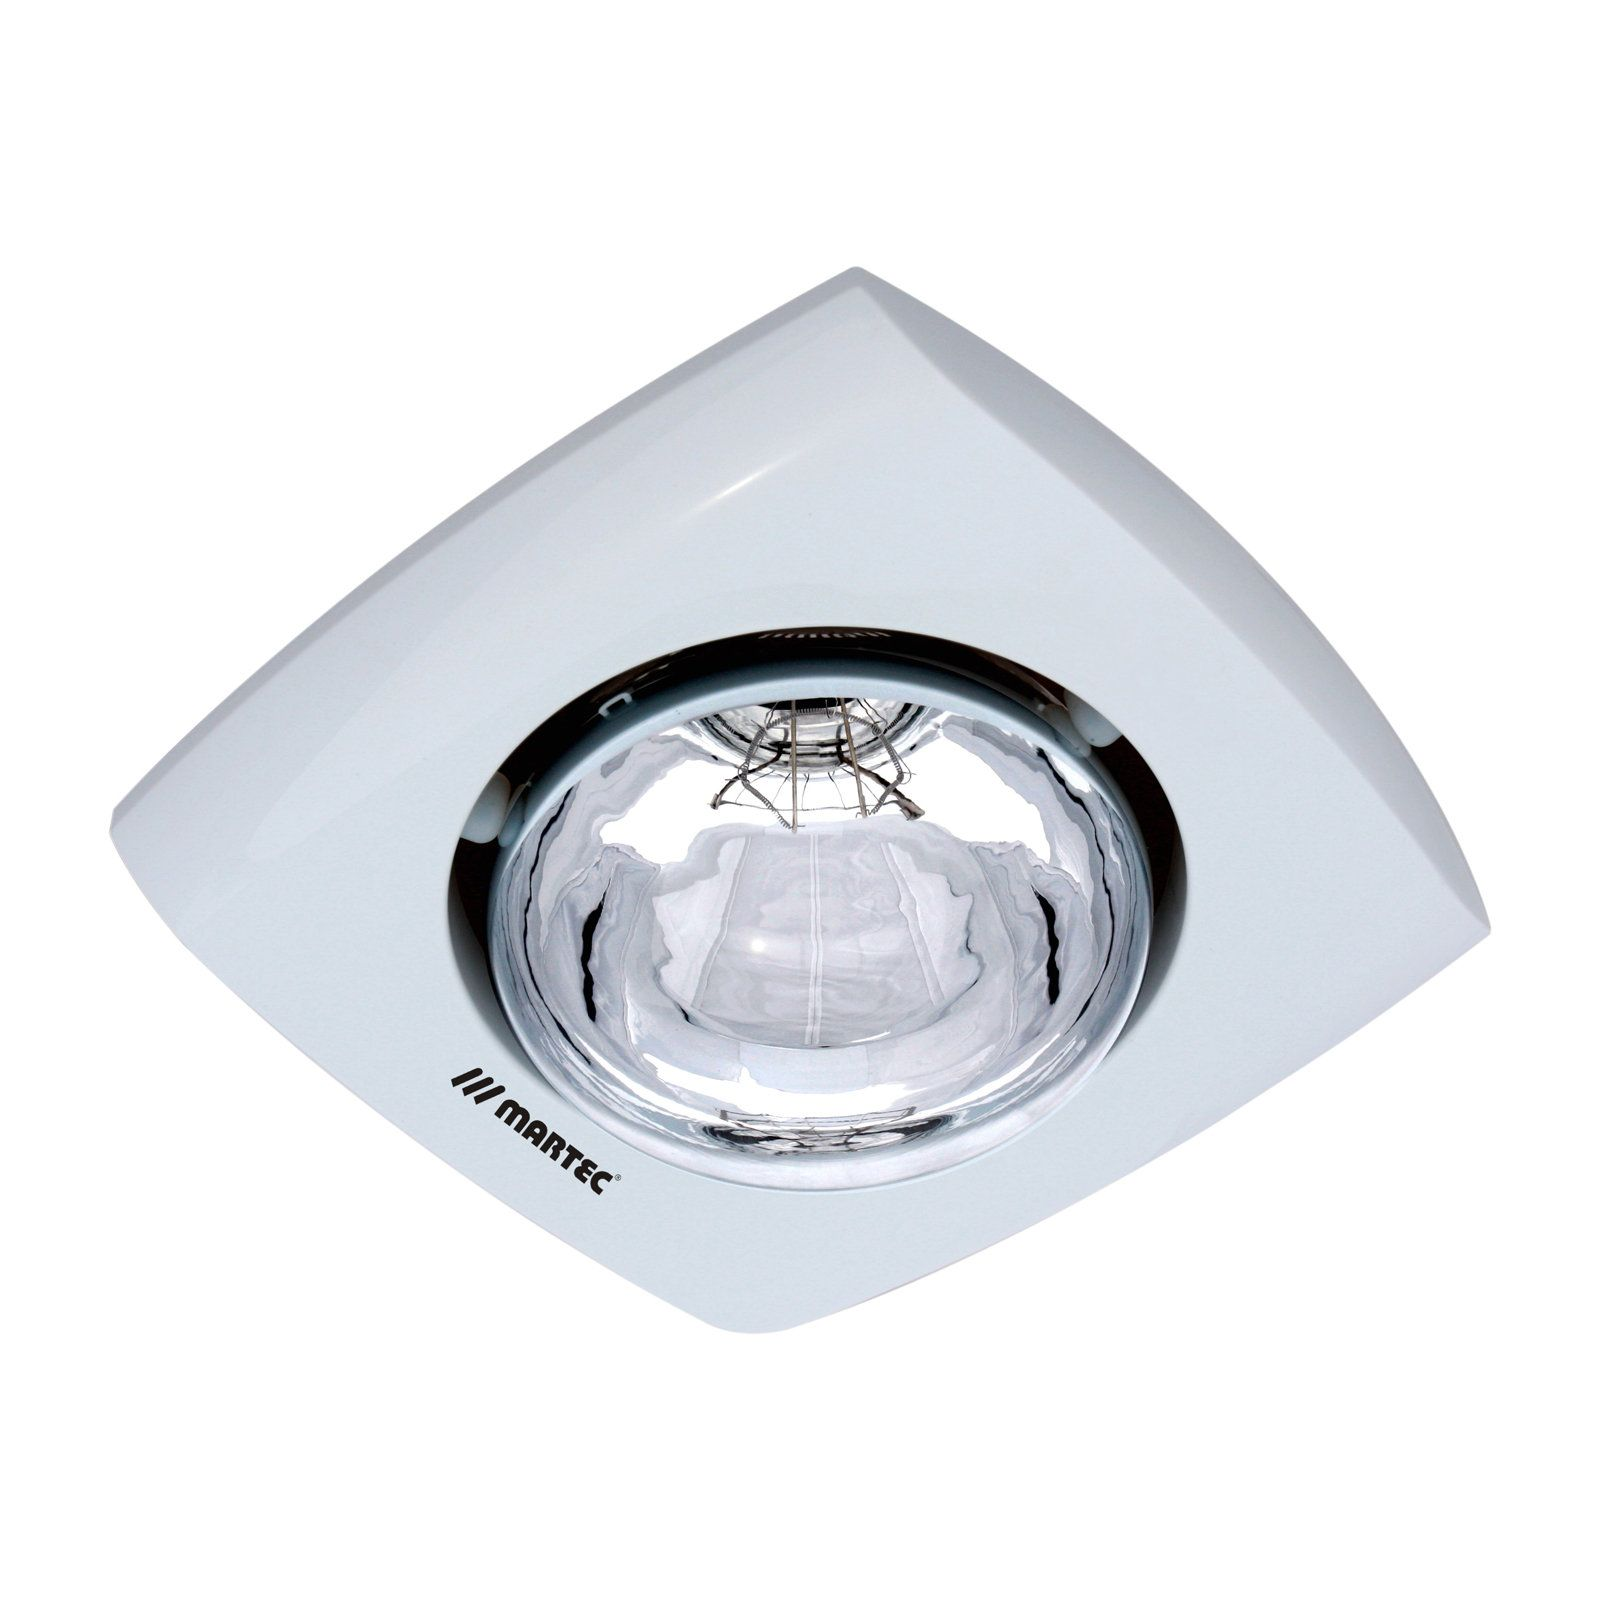 Heat Lamp Bathroom Lighting And Ceiling Fans With Images Bathroom Heat Lamp Bathroom Heater Bathroom Light Fittings